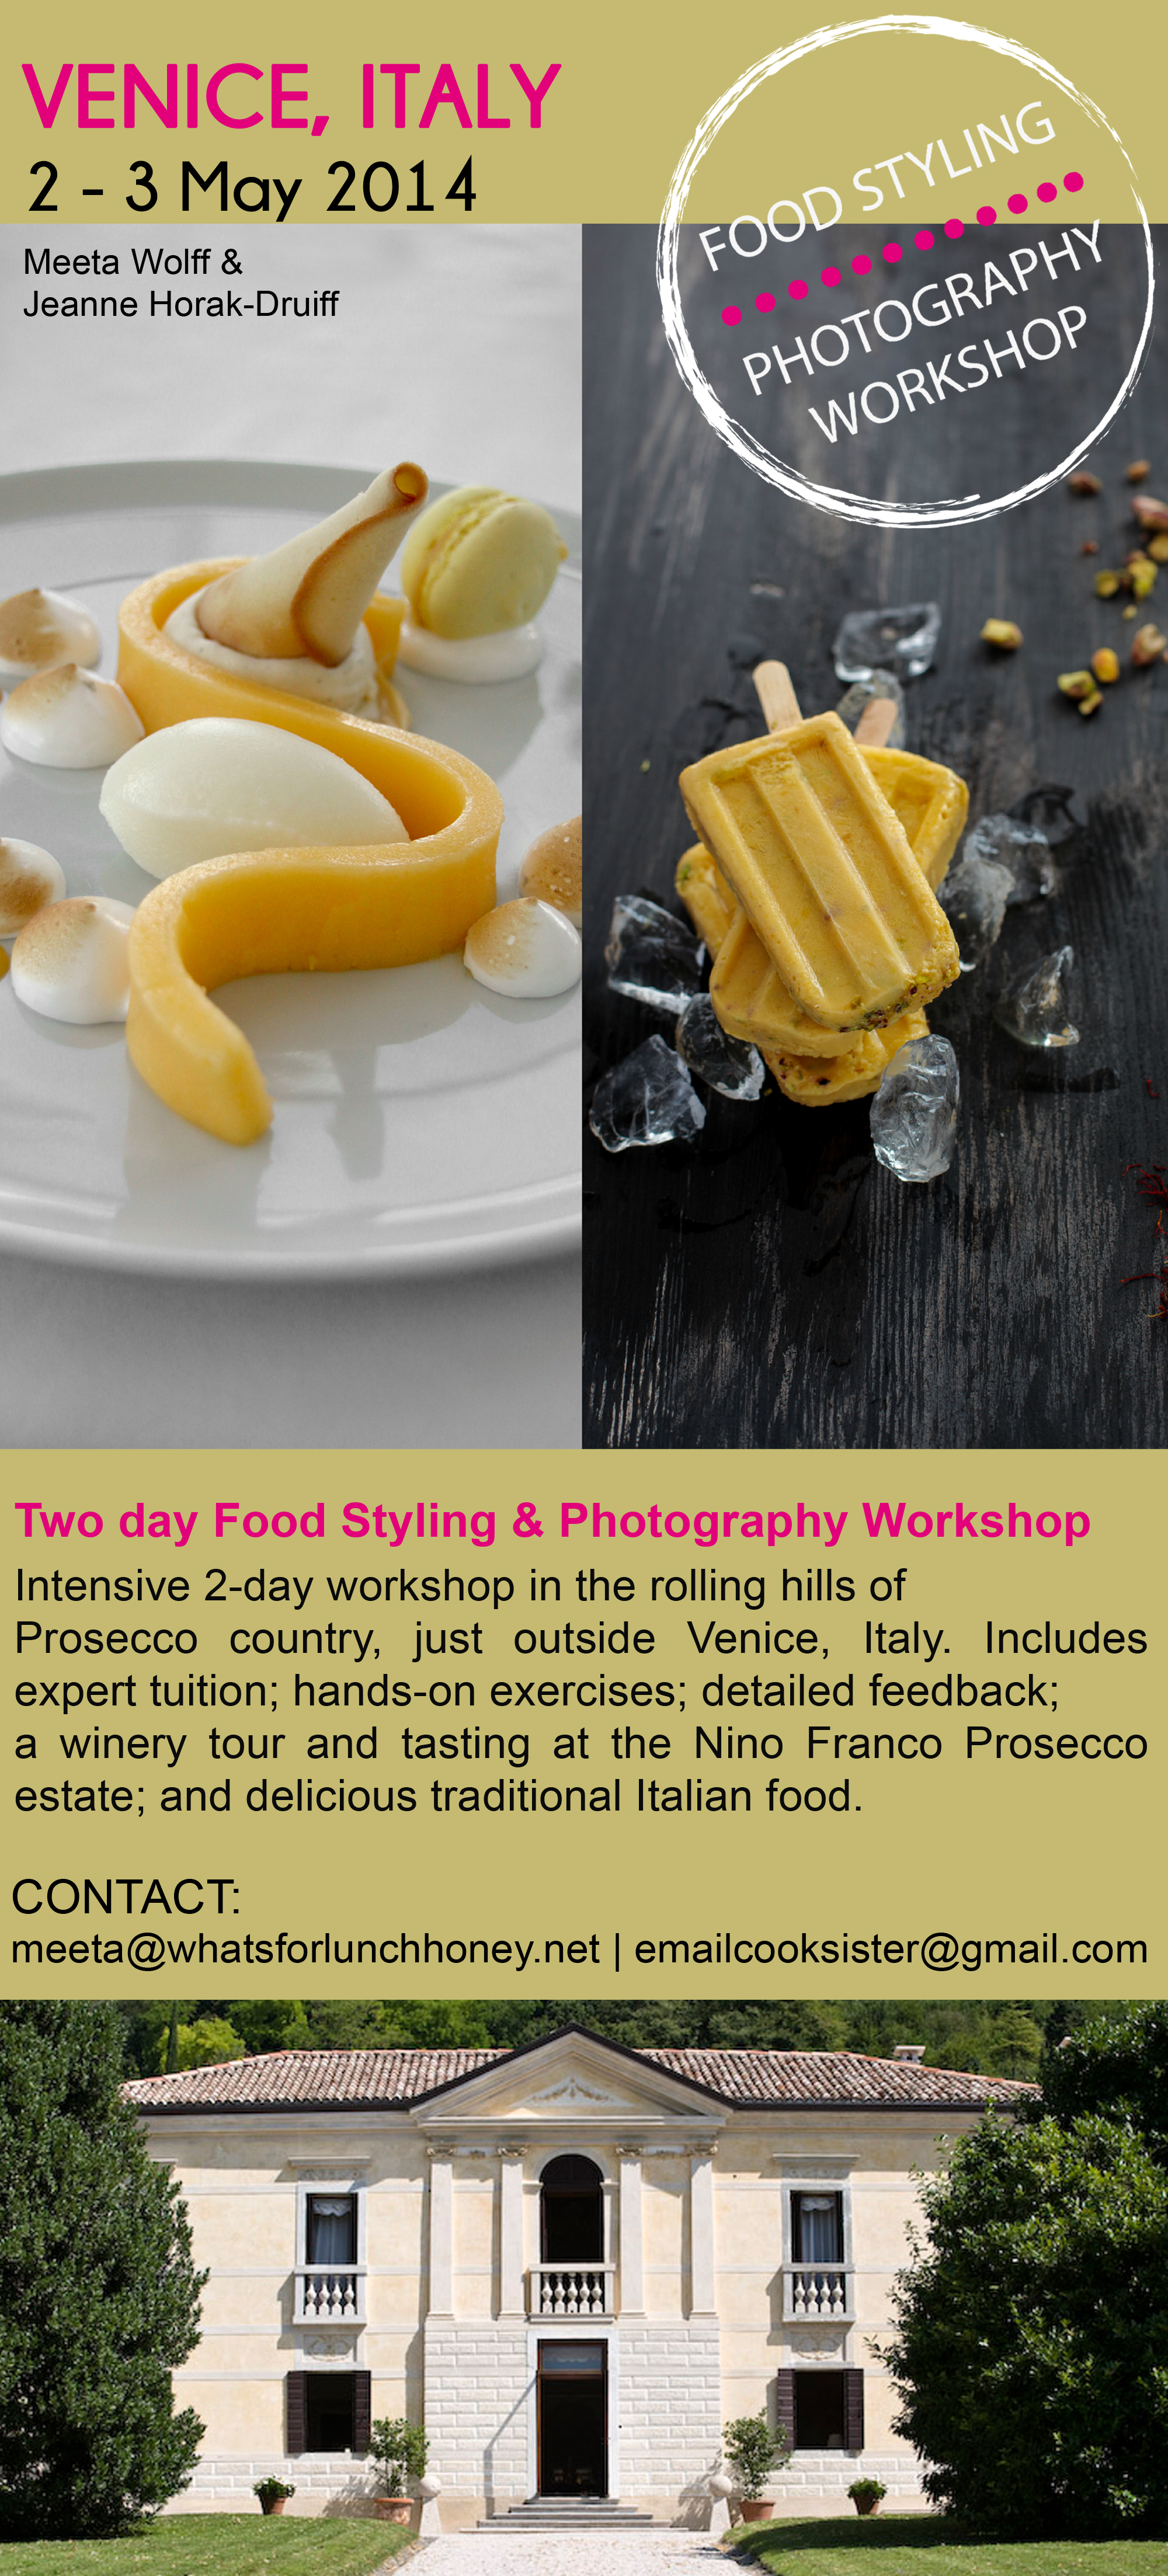 Venice Food Photography & Styling Workshop